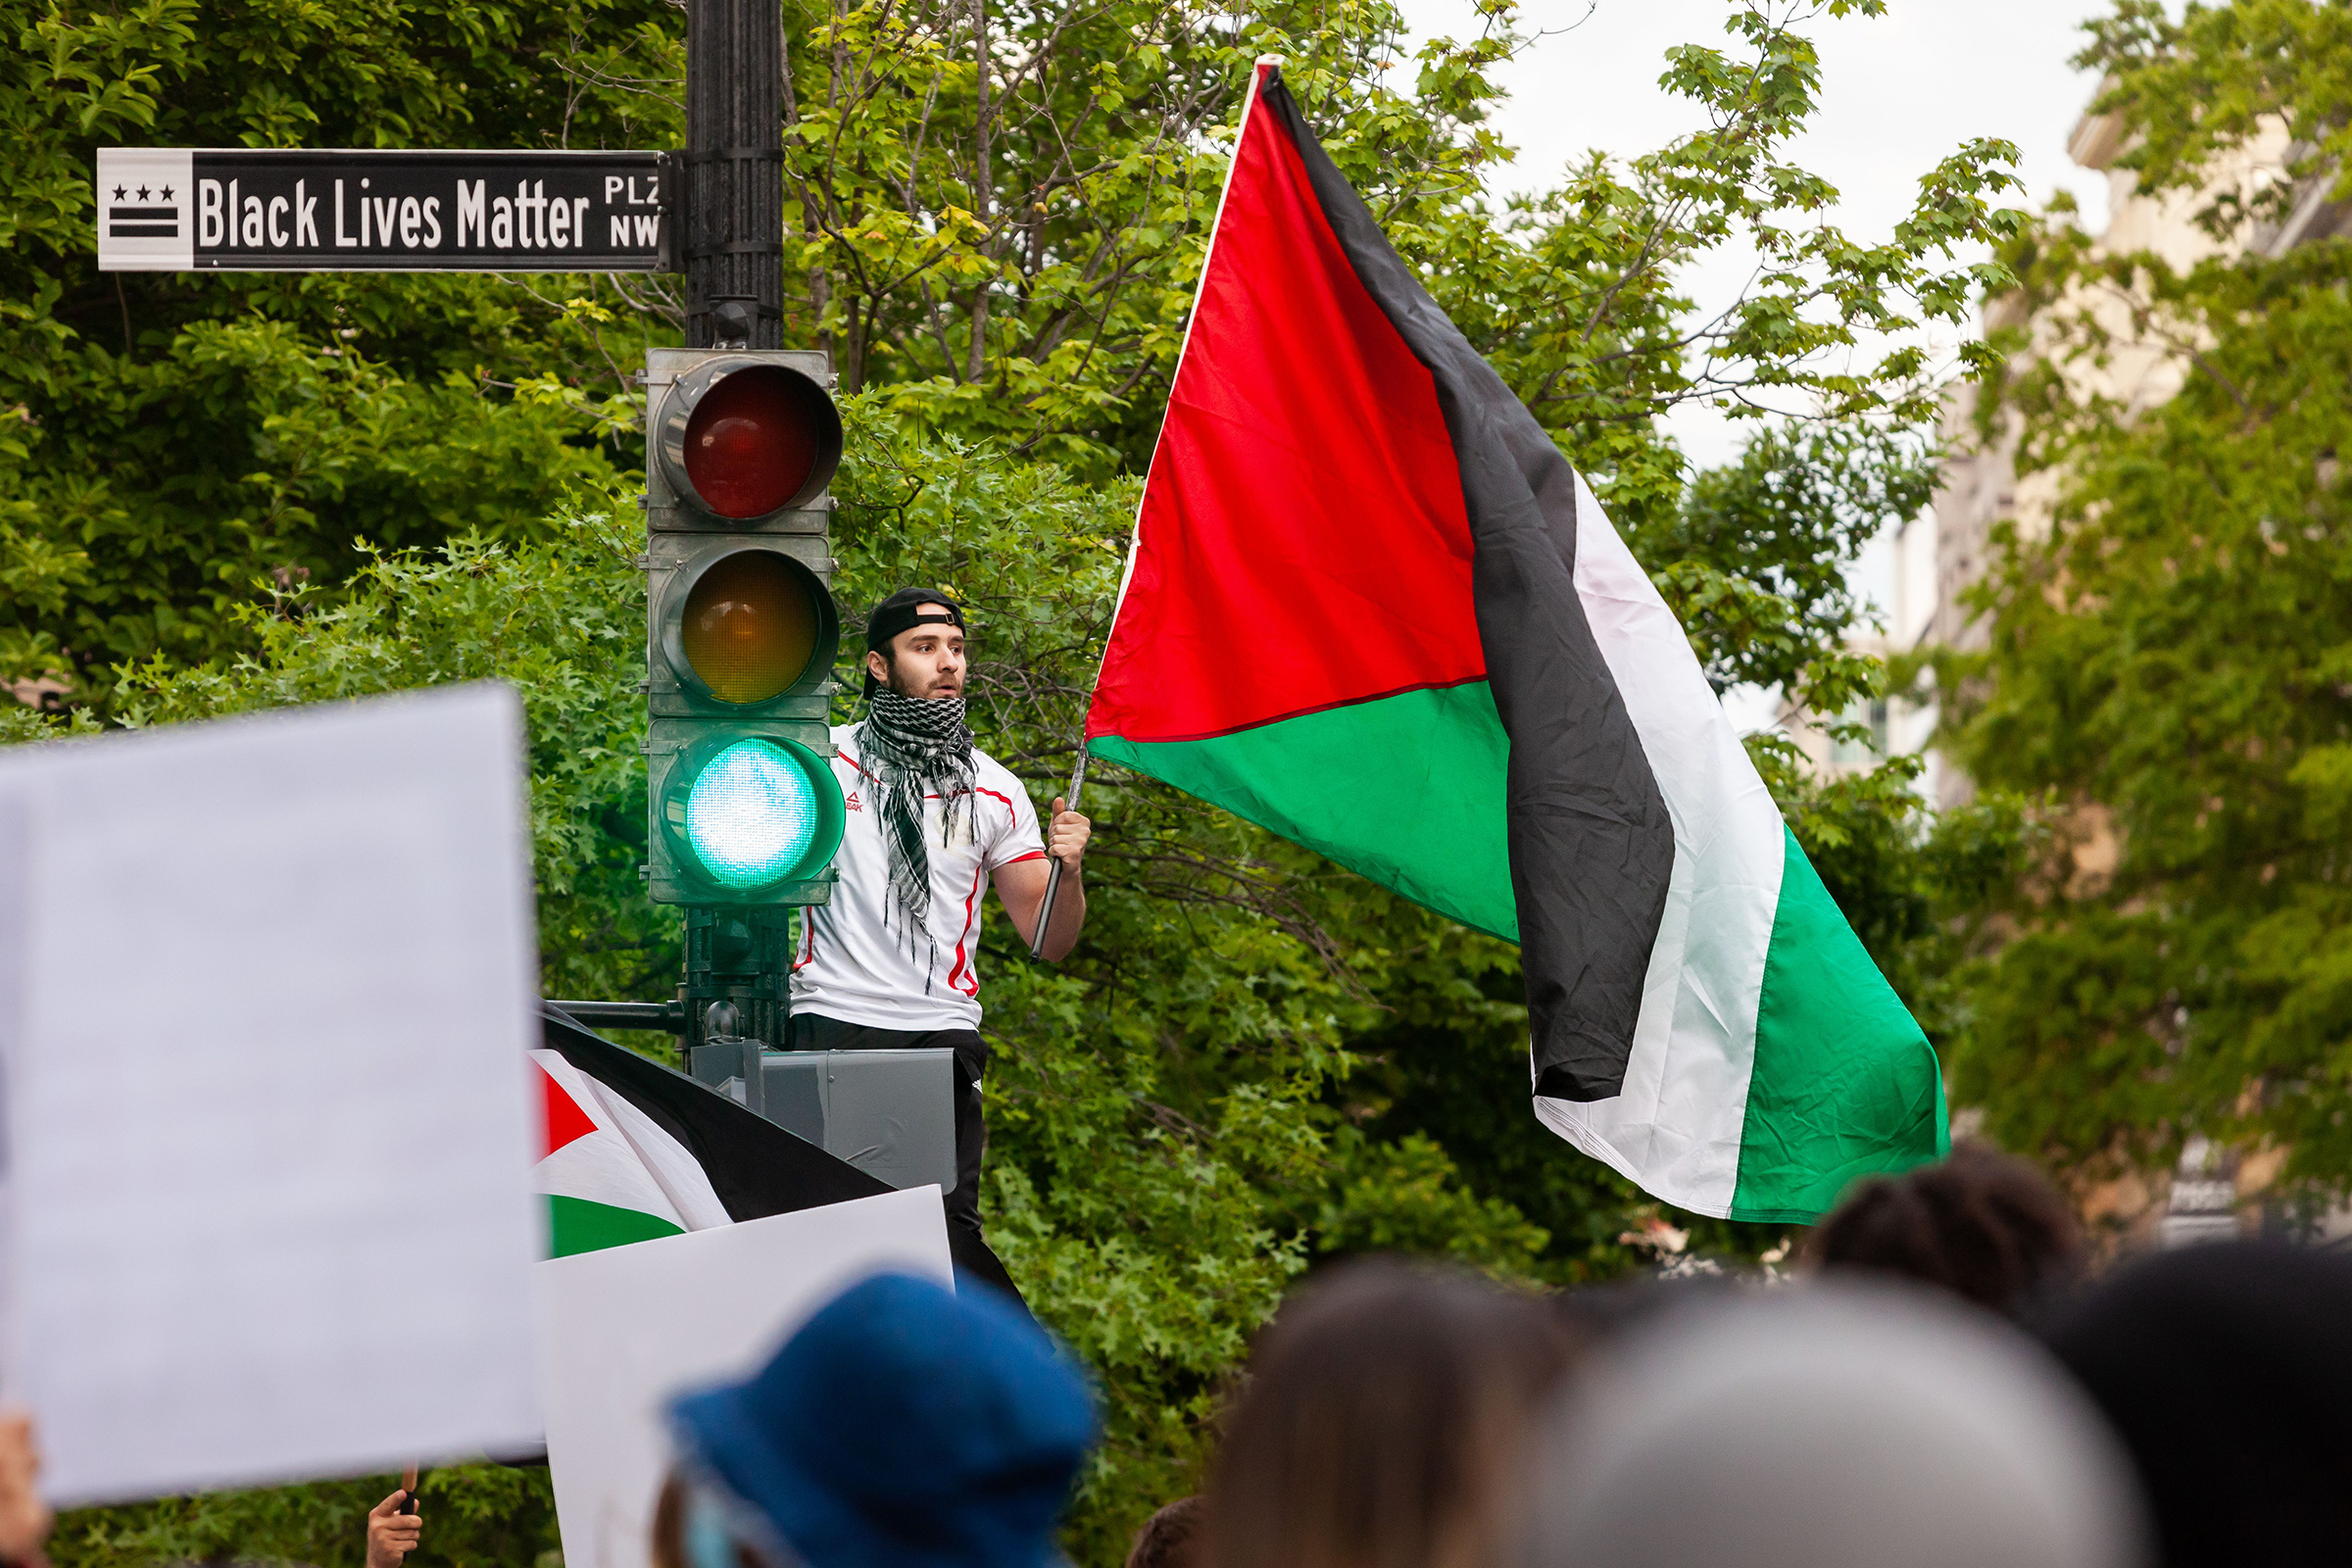 A man waves a Palestinian flag near the White House during a protest on May 11, 2021. Democratic Congresswoman Rashida Tlaib, who is of Palestinian descent, compared the Palestinian struggle to how Black Americans have risen up against police brutality in the past year.